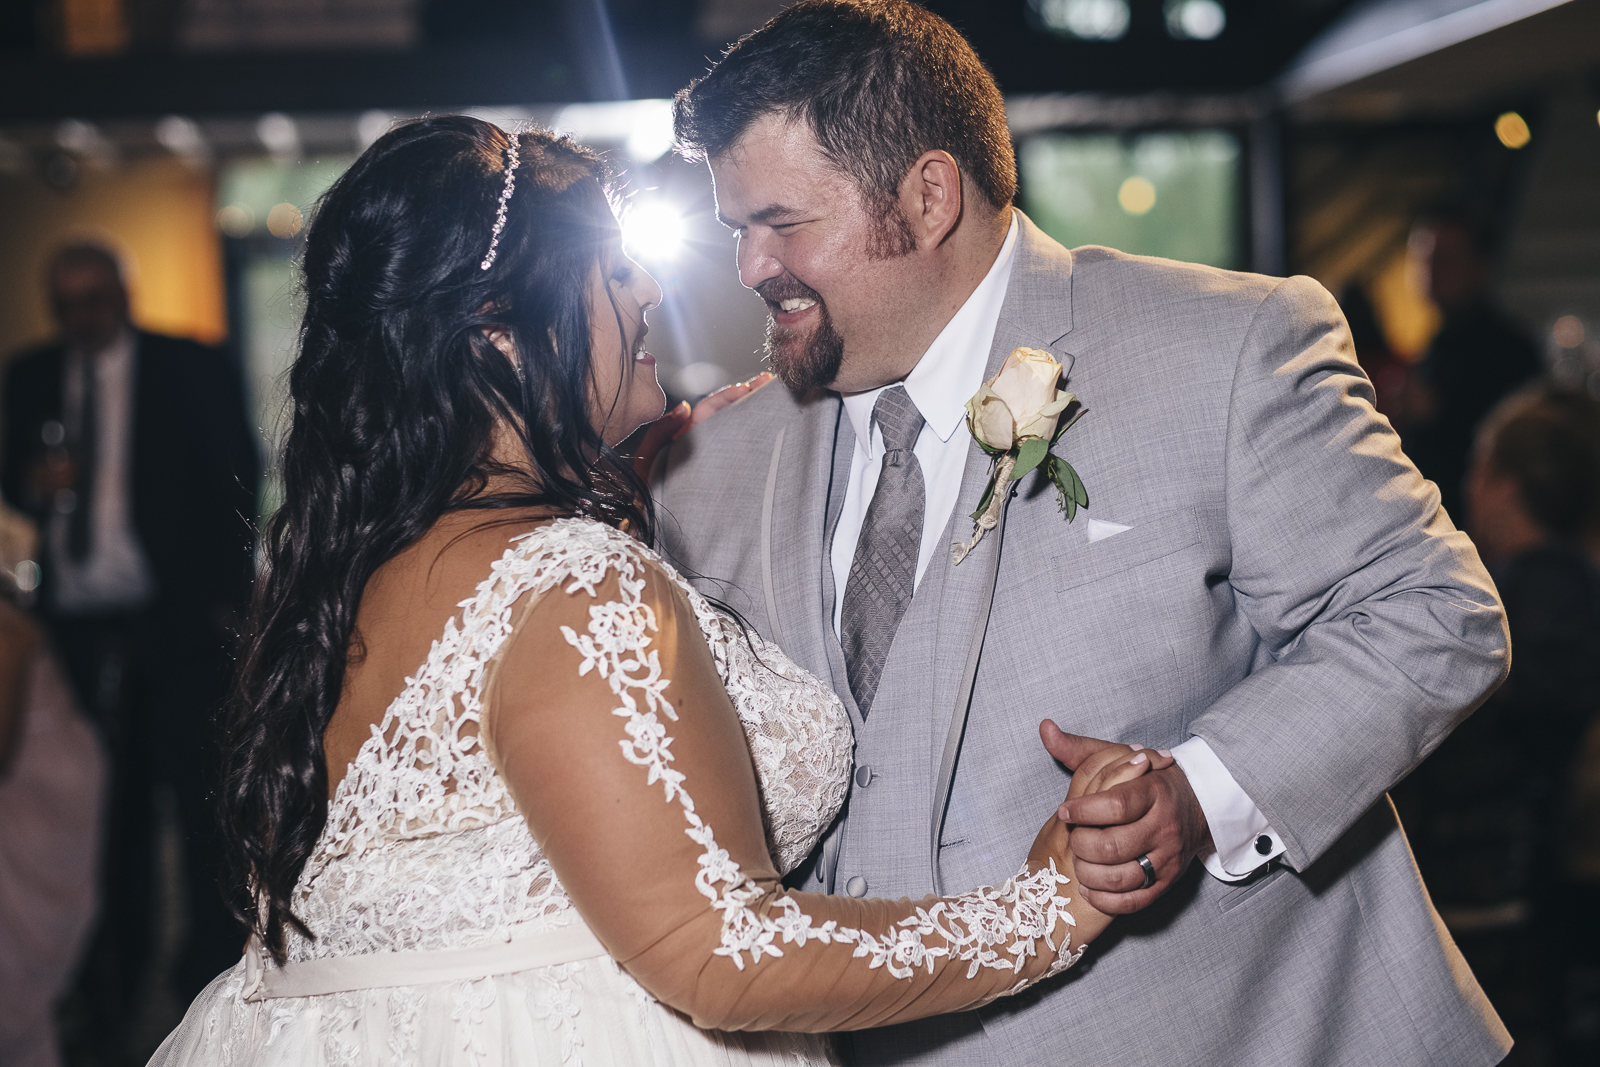 Bride and groom share first dance at Nazareth Hall wedding reception.